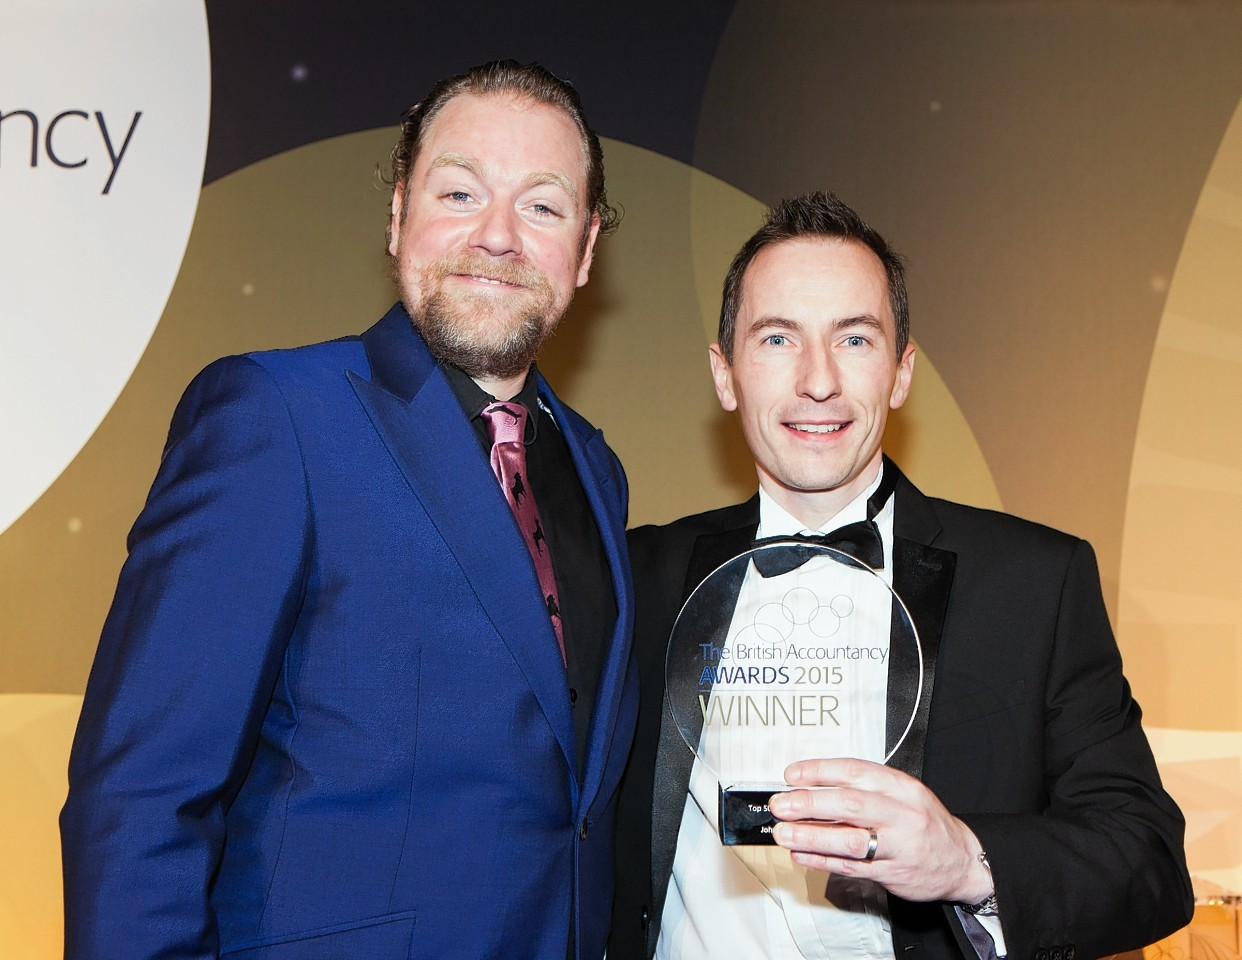 Johnston Carmichael's Donald McNaught, right, picks up the award for restructuring project of the year, with Rufus Hound, at the British Accountancy Awards